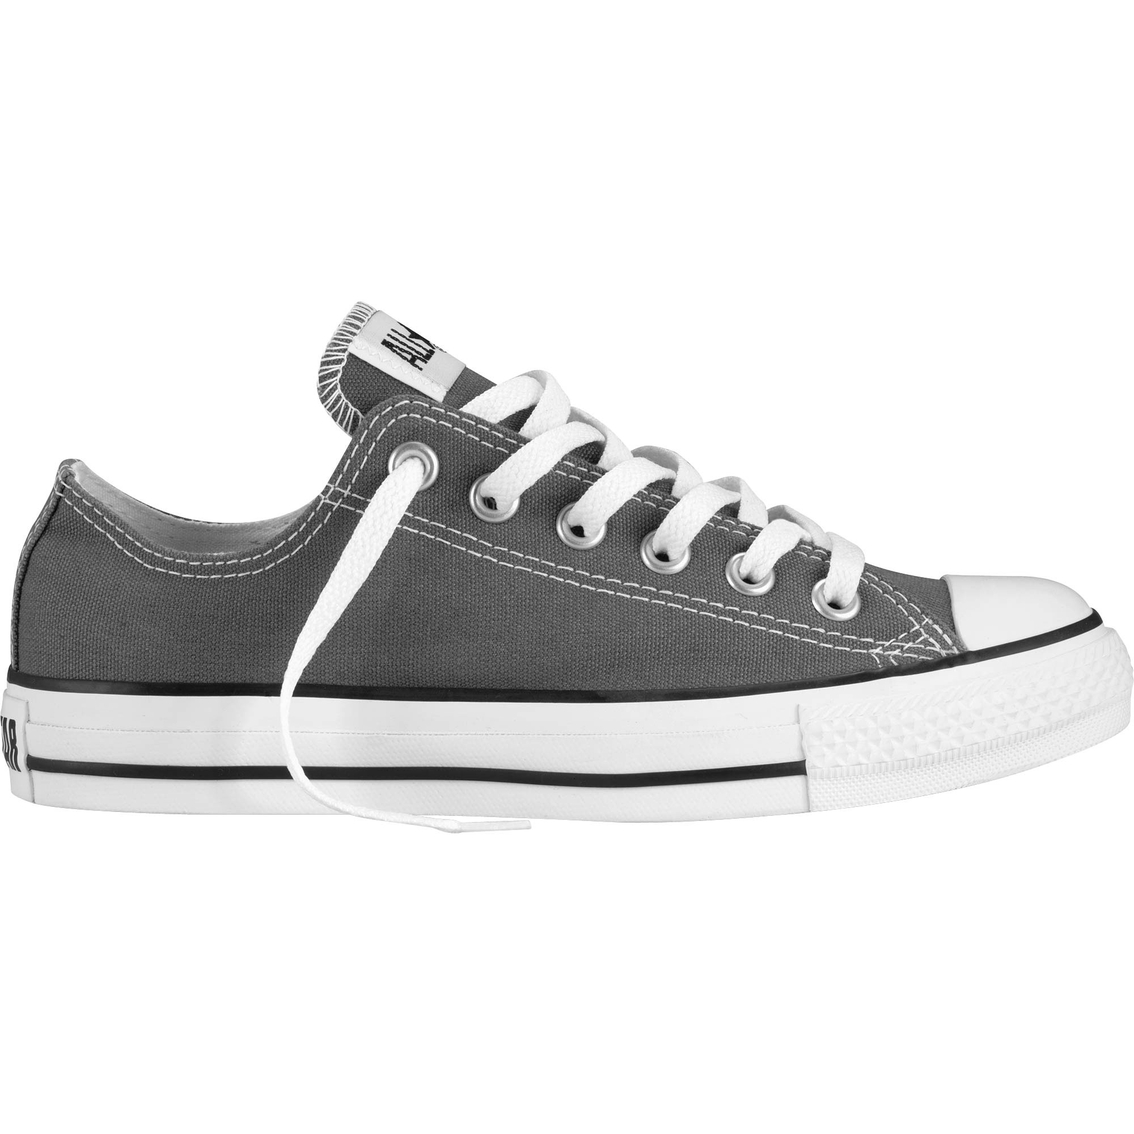 2348d0adb2a Converse Chuck Taylor All Star Low Sneakers